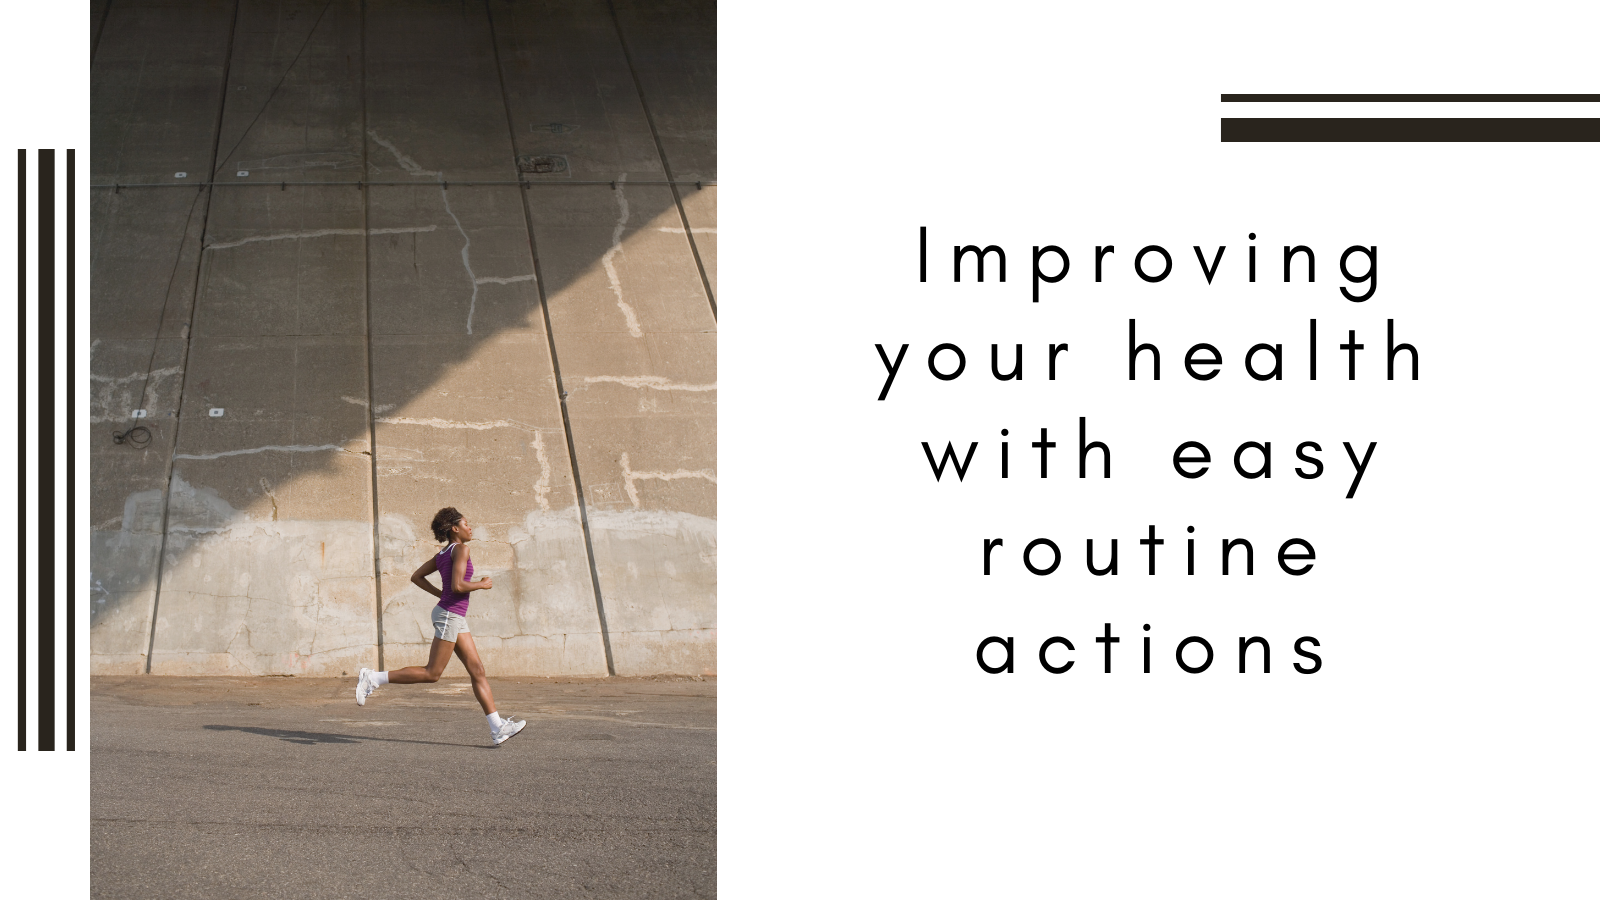 Improving Your Health with Easy Routine Actions Is More Effective Than You Think